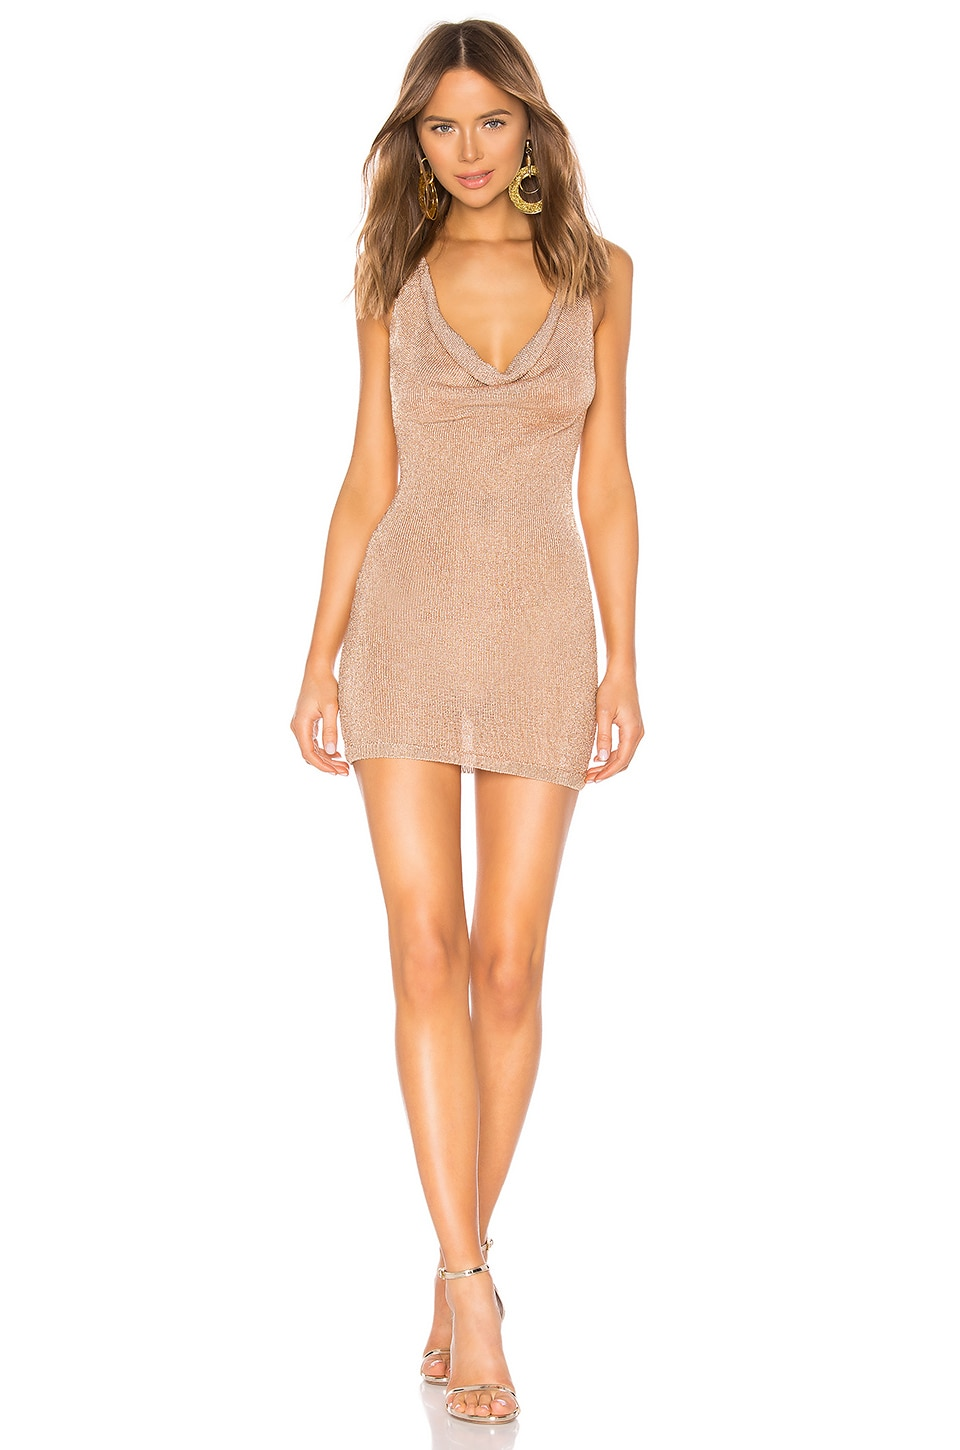 NBD x Naven Melina Halter Dress in Gold Lurex